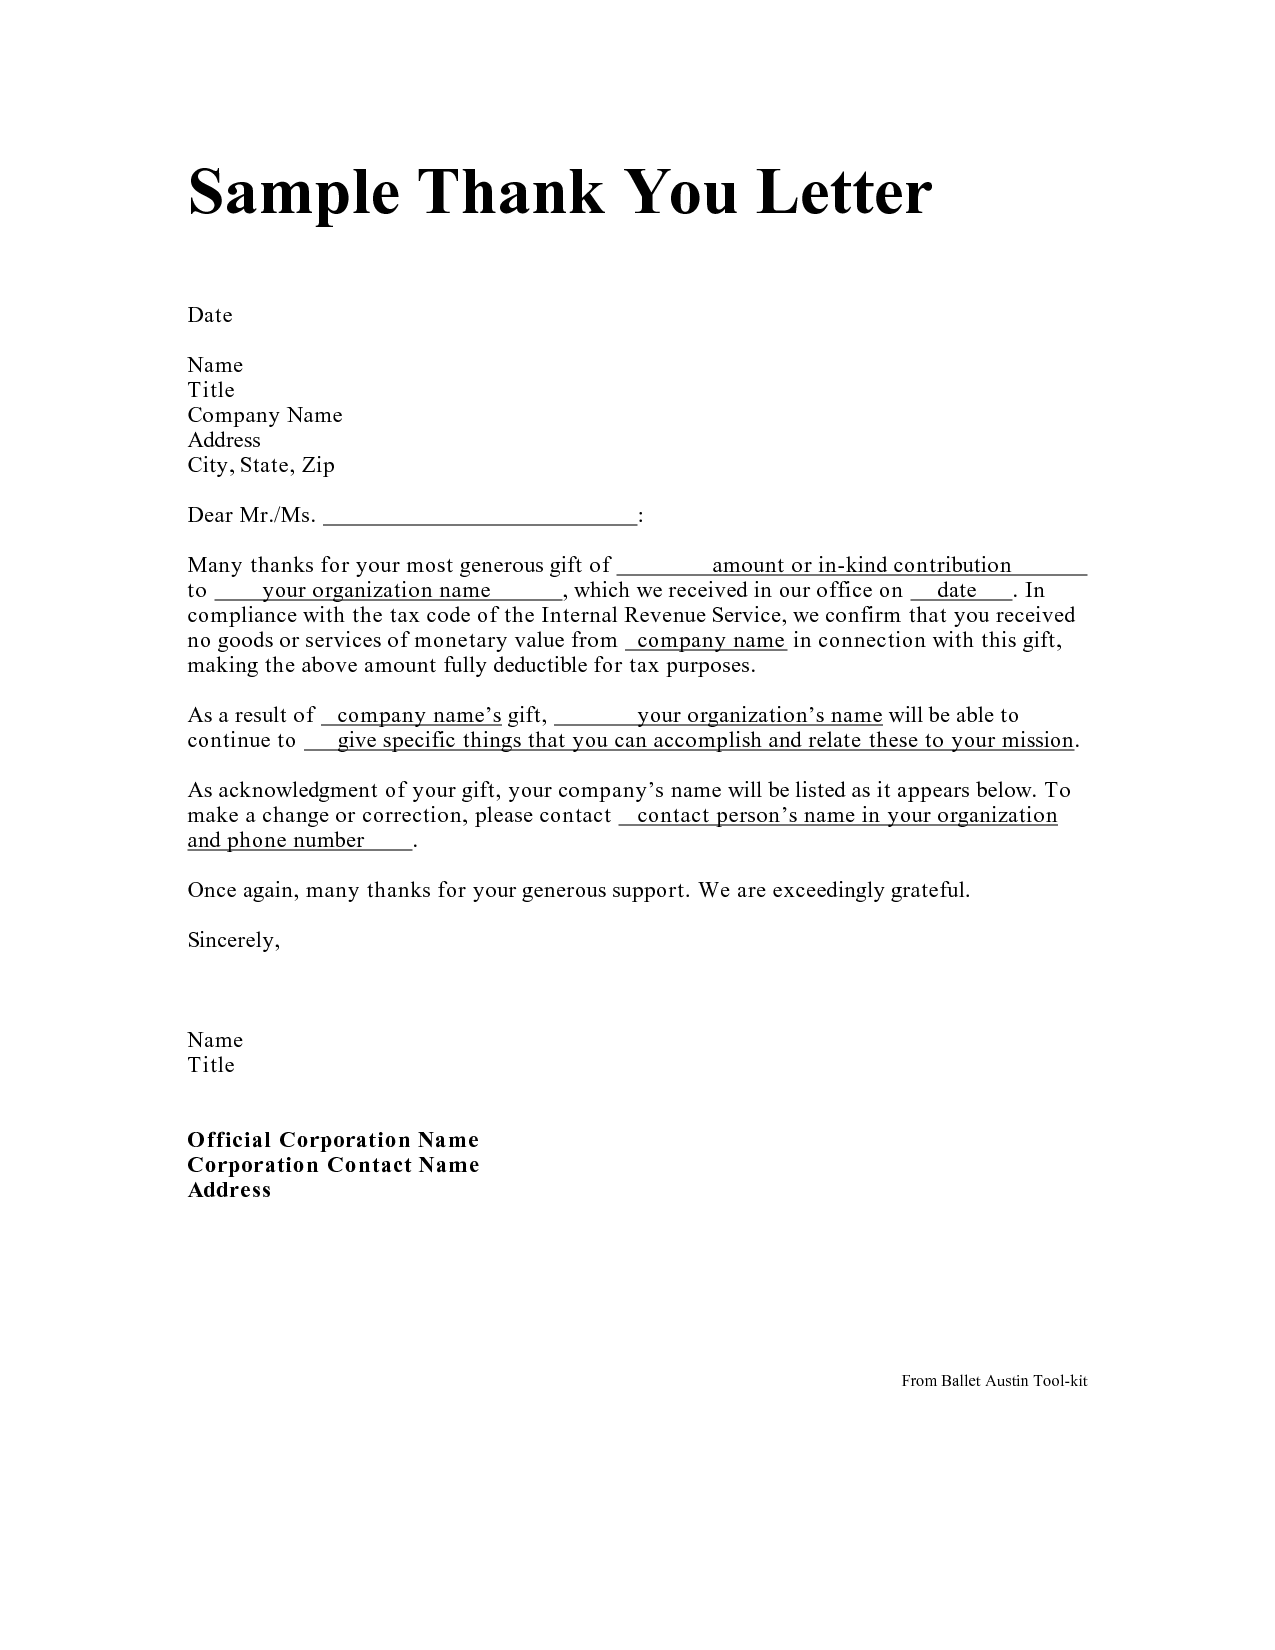 Thank You Letter Examples from i.pinimg.com